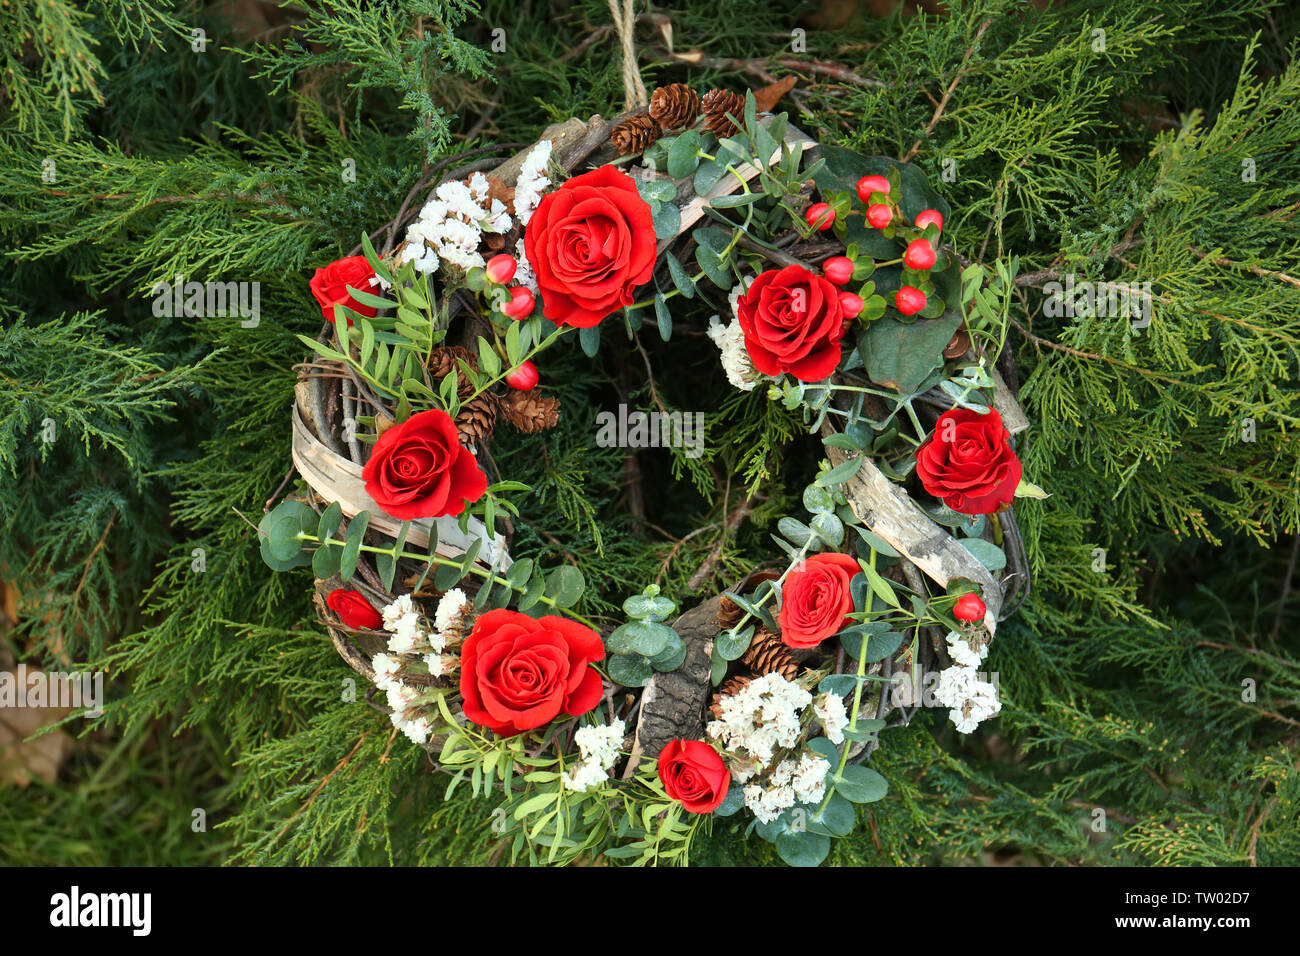 Floral wreath with beautiful flowers on thuja branches background Stock Photo